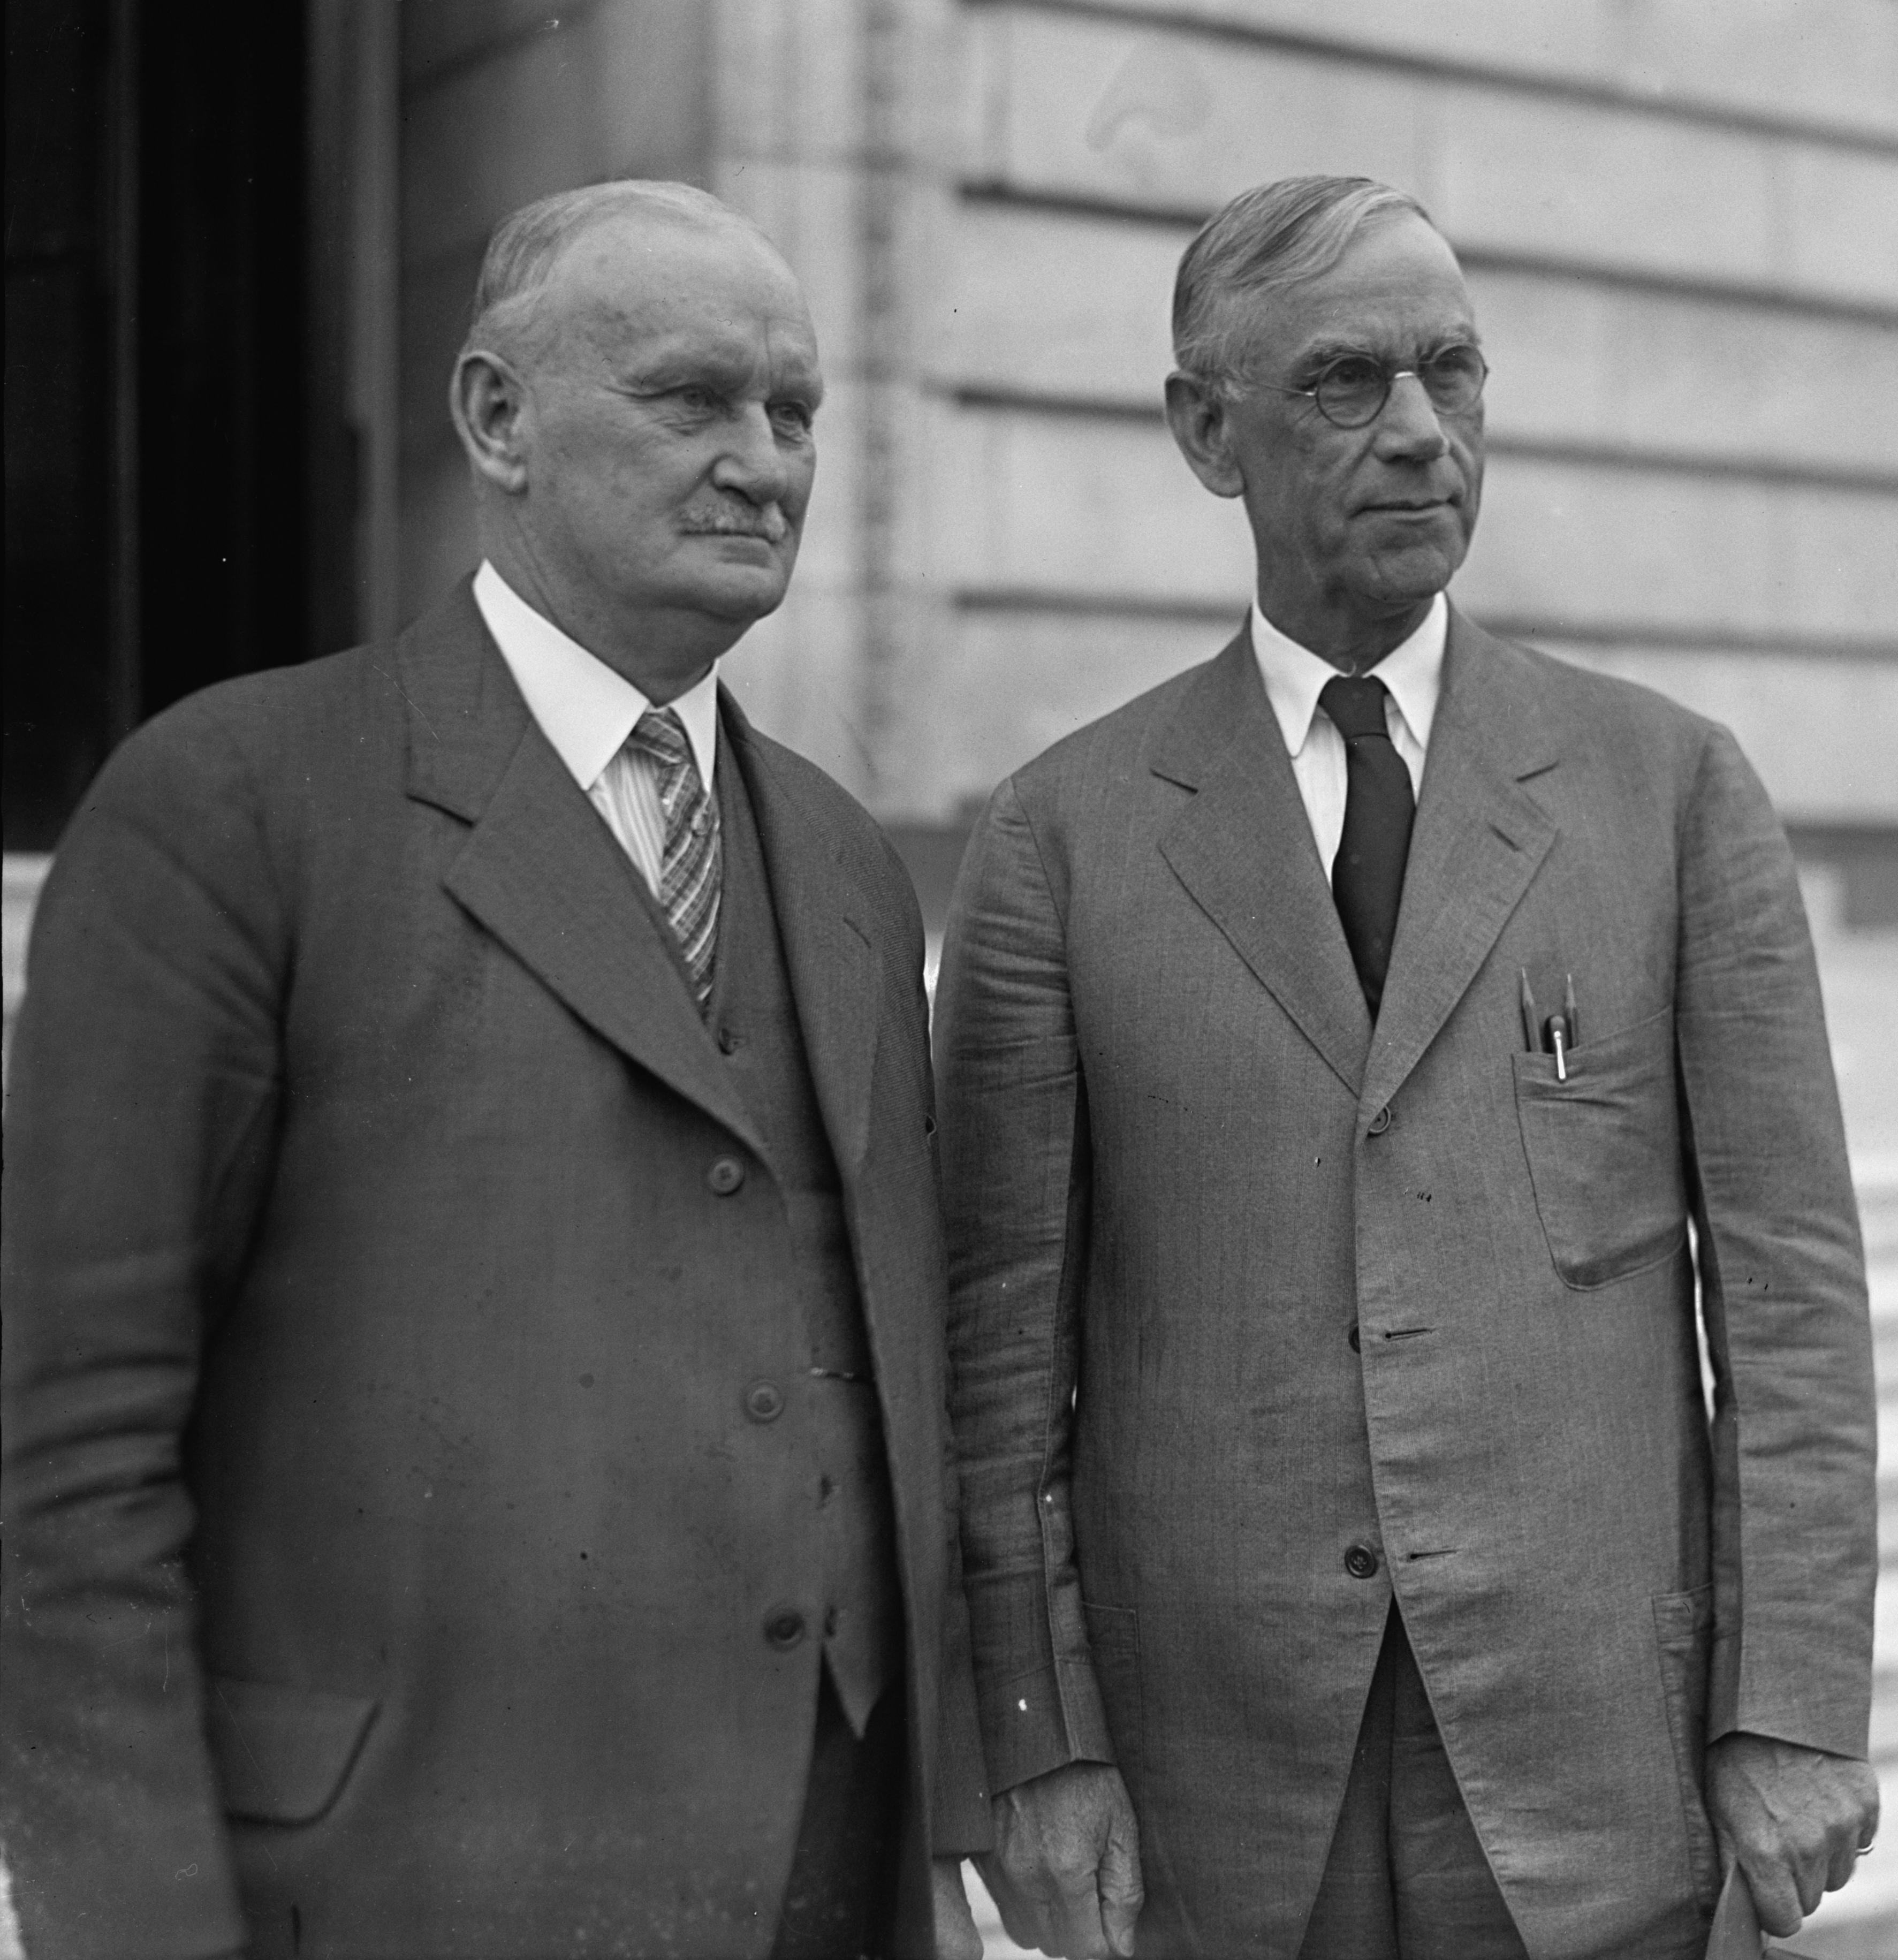 Willis C. Hawley and Reed Smoot 1929